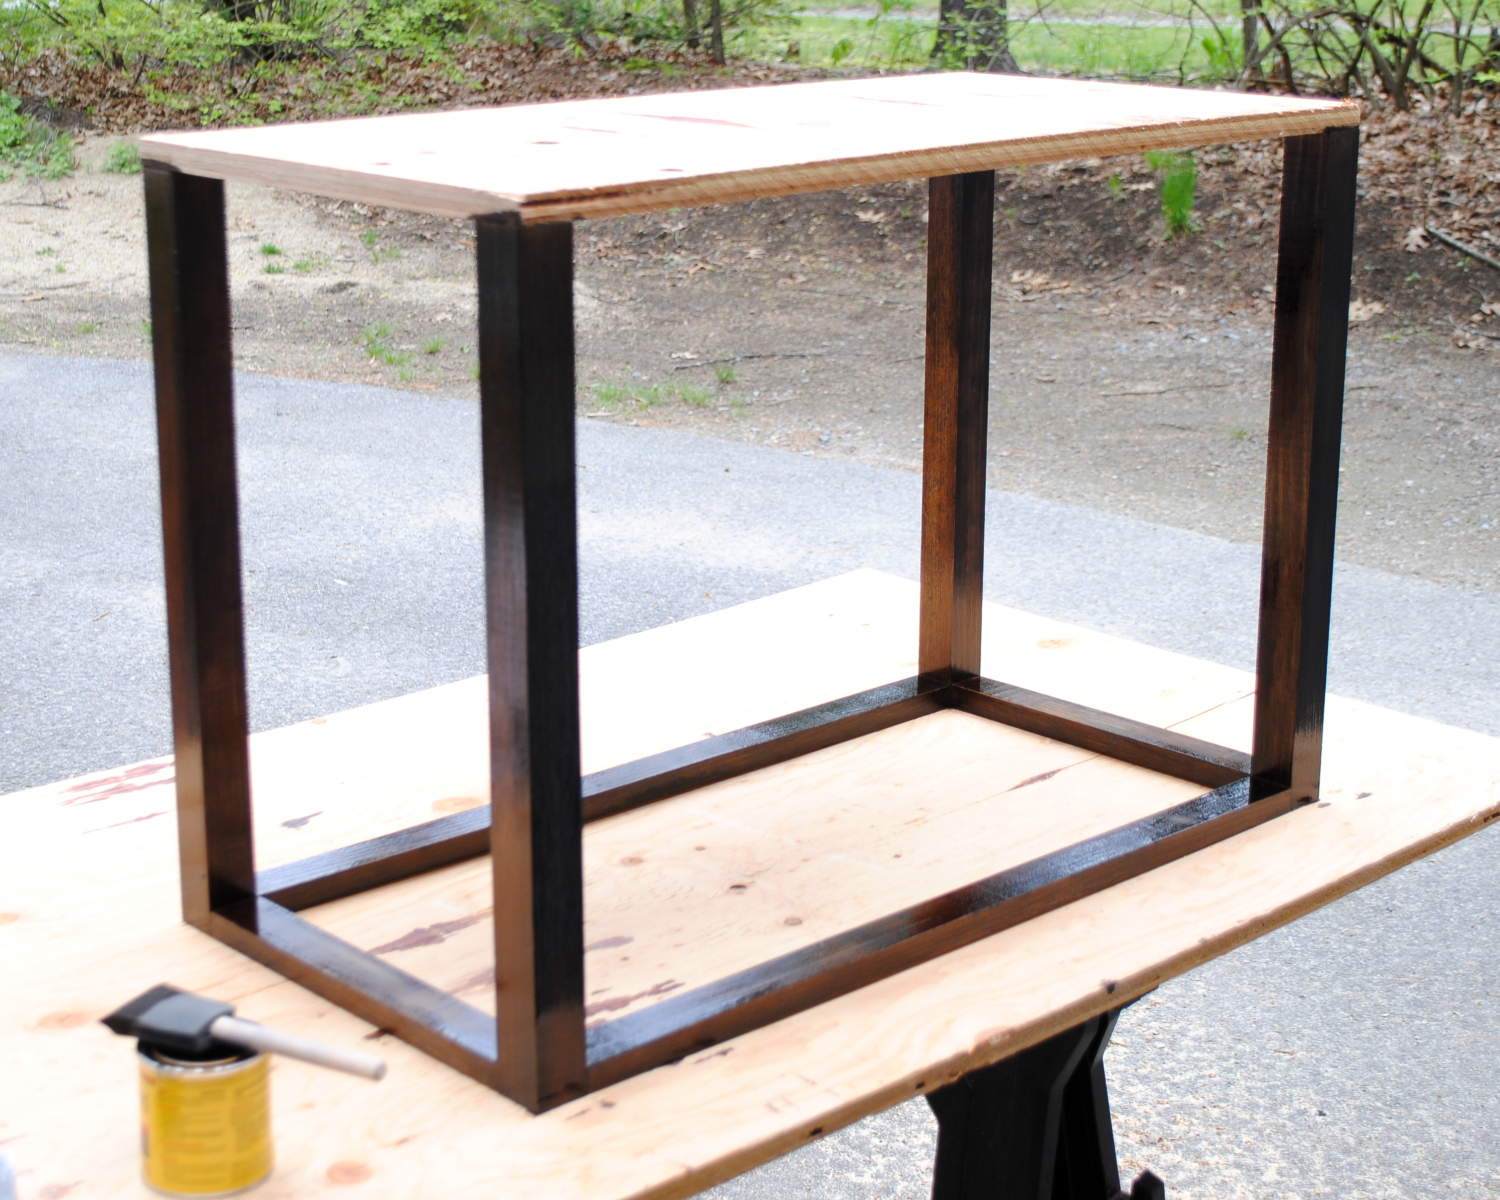 Diy Bedroom Bench diy bedroom bench with leather upholstery - the chronicles of home